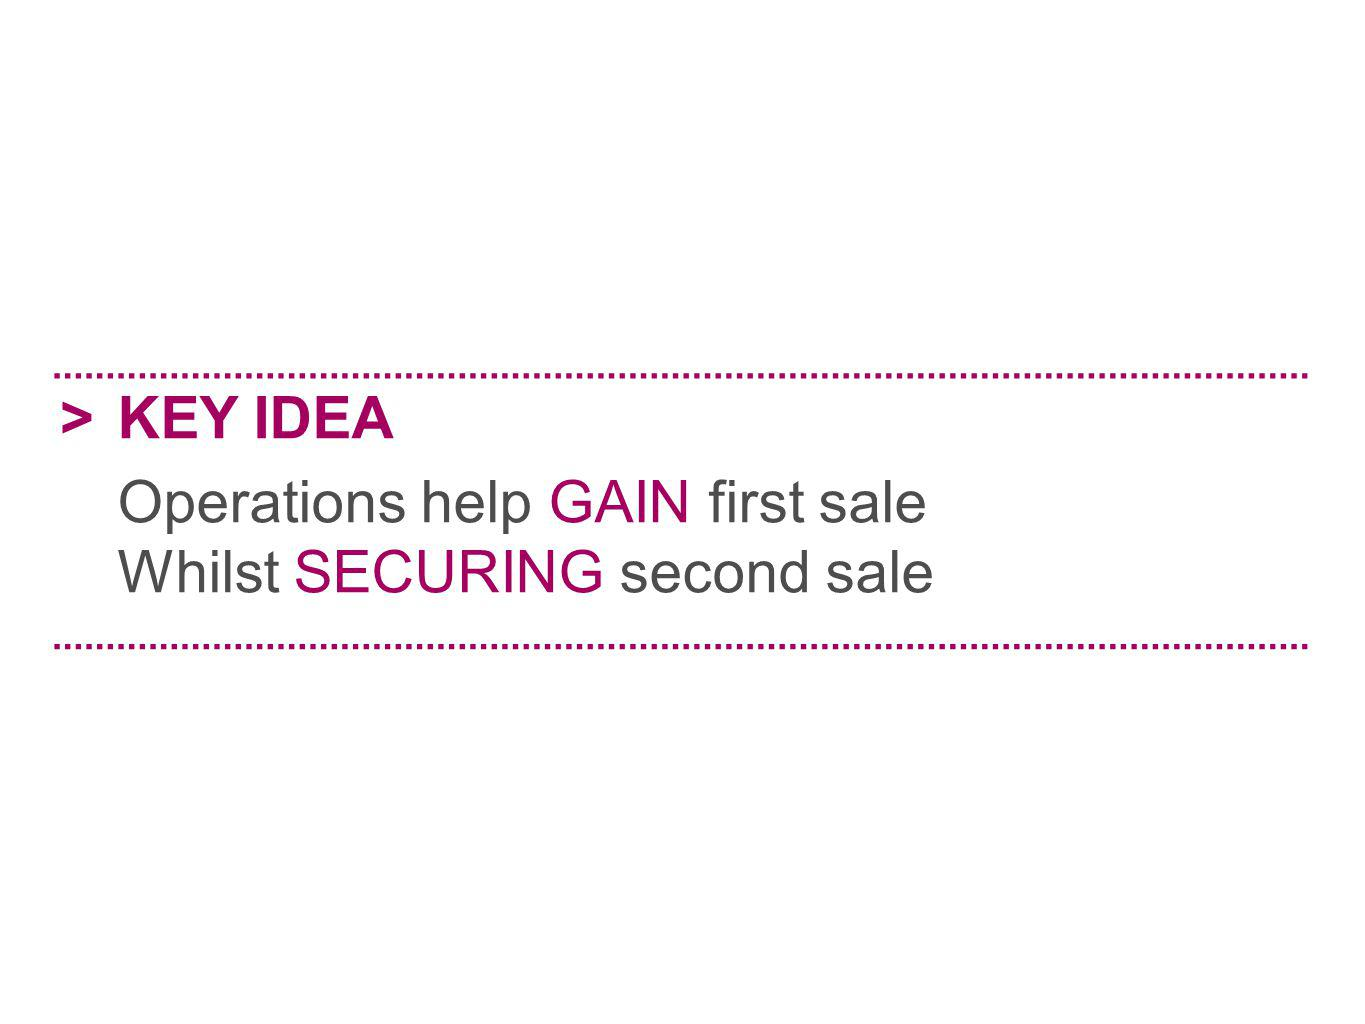 > KEY IDEA Operations help GAIN first sale Whilst SECURING second sale